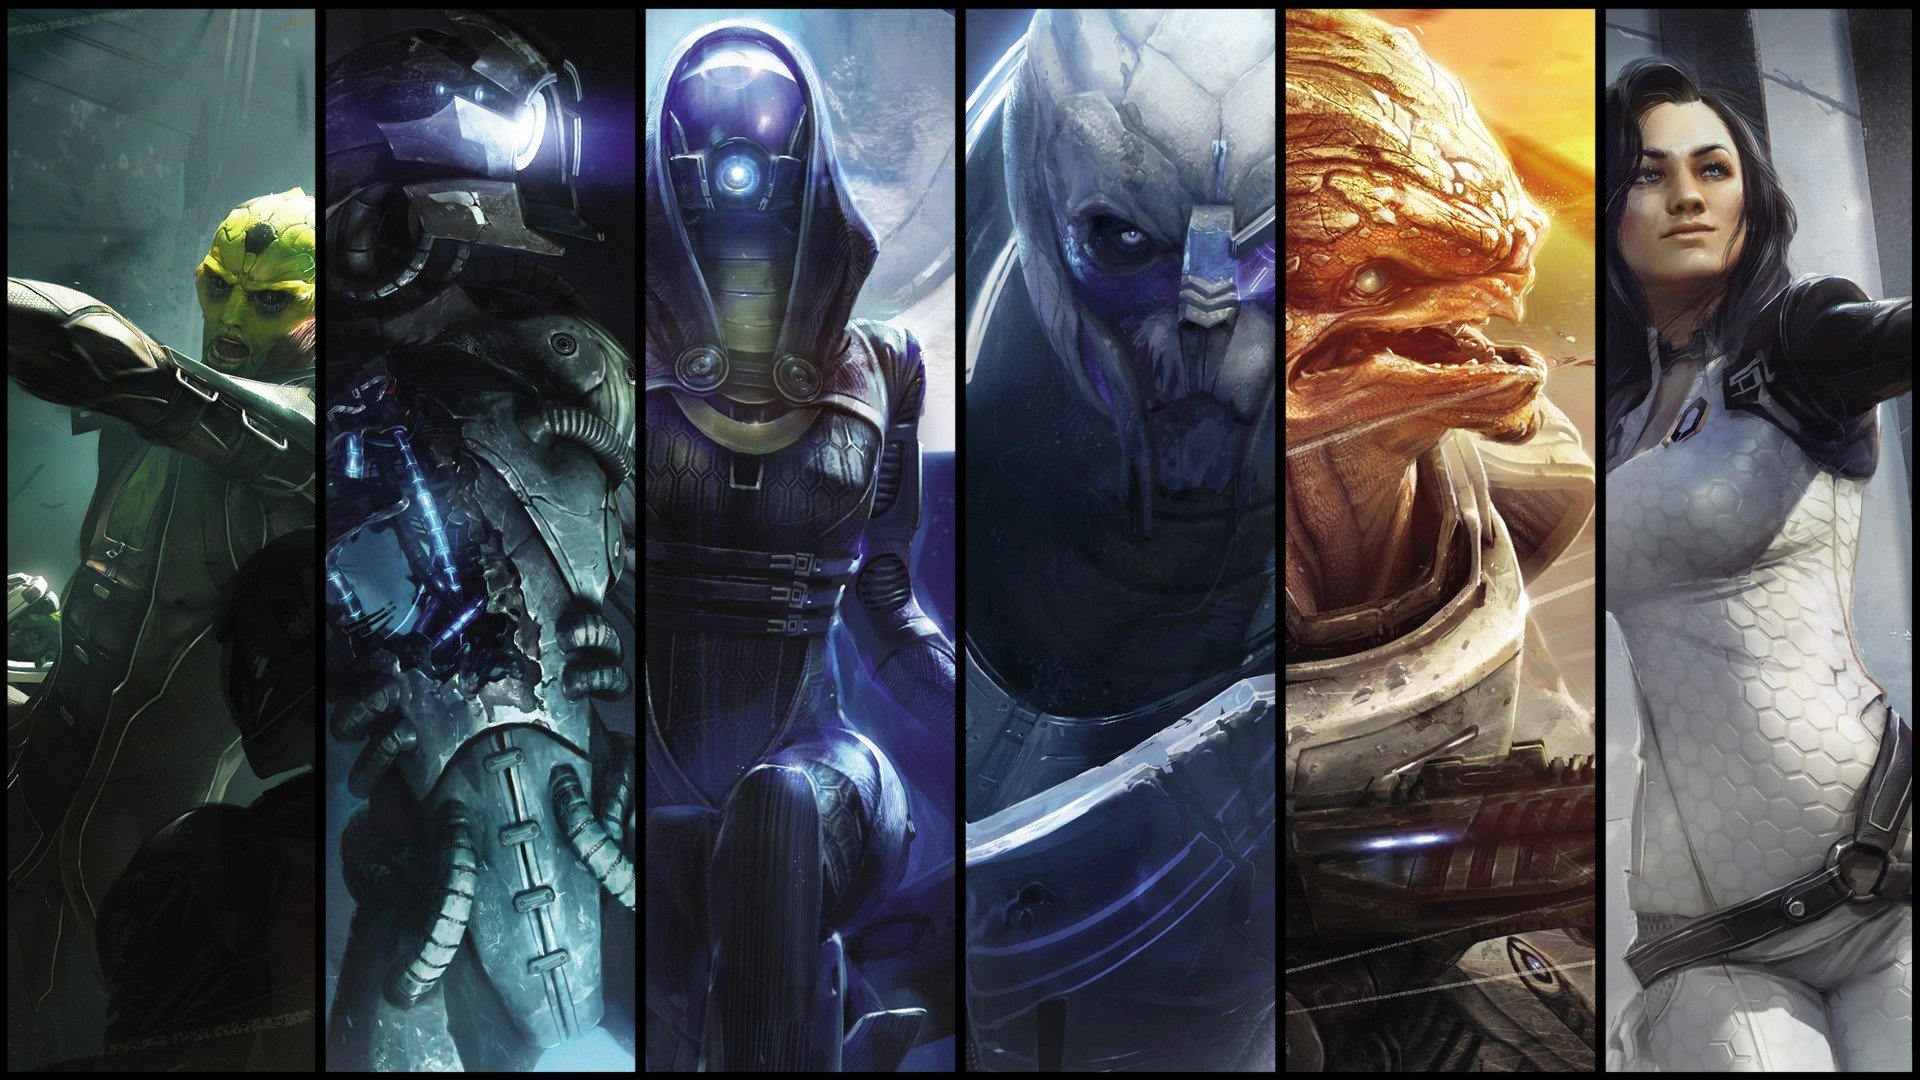 The Top 10 Most Memorable Moments In The Mass Effect Trilogy